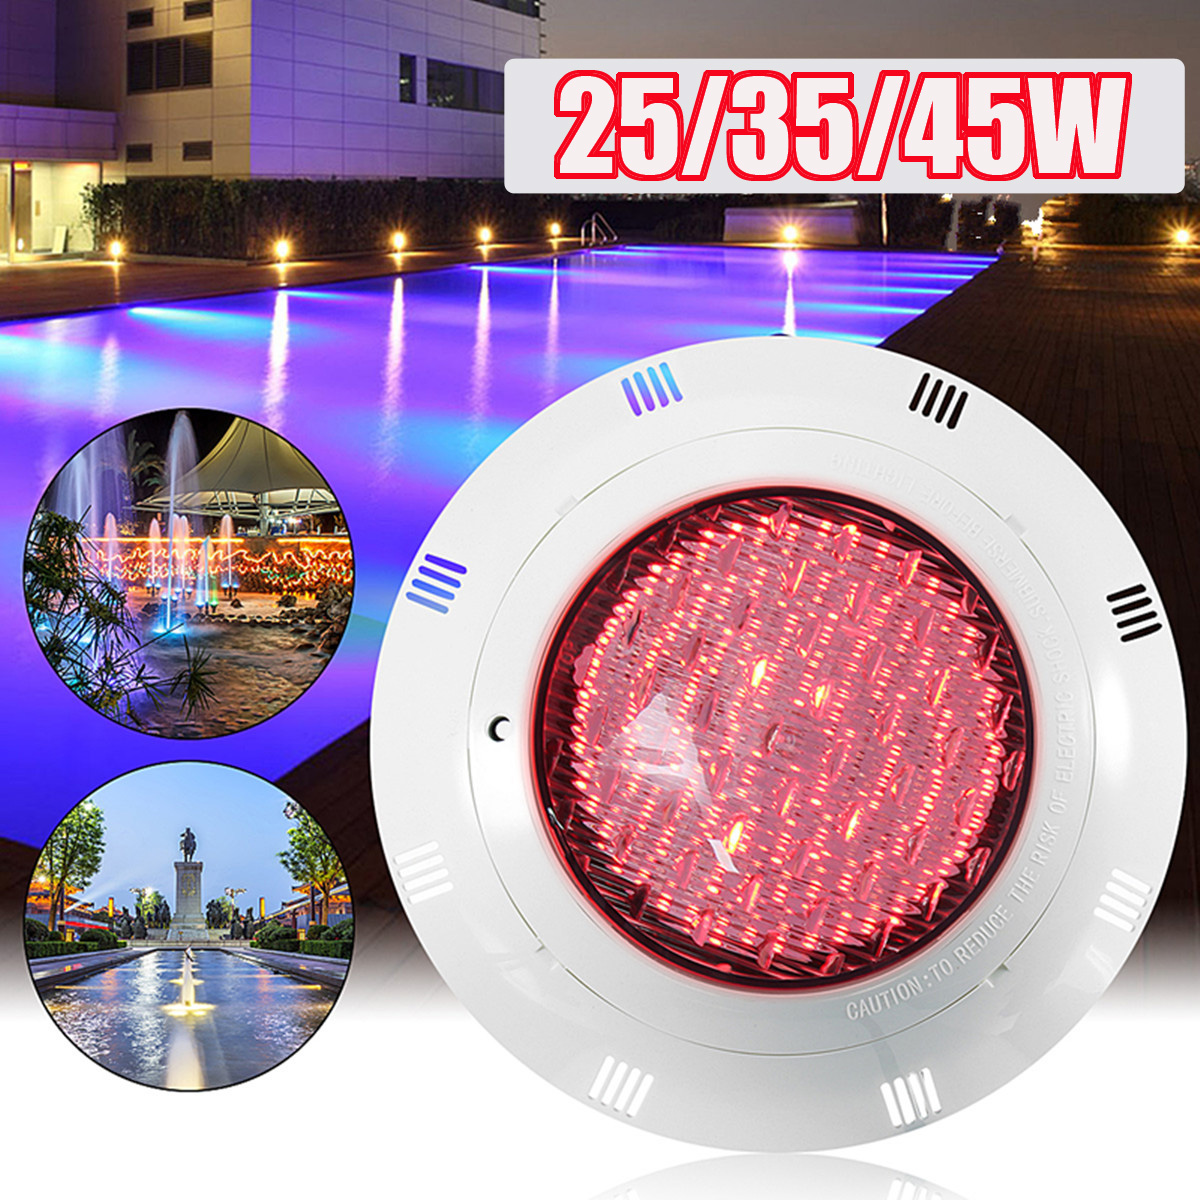 Learned Ac 12v 25/35/45w Rgb Led Swimming Pool Underrwater Led Light 7 Color Wall Mounted Pond Lighting Remote Control Lights & Lighting